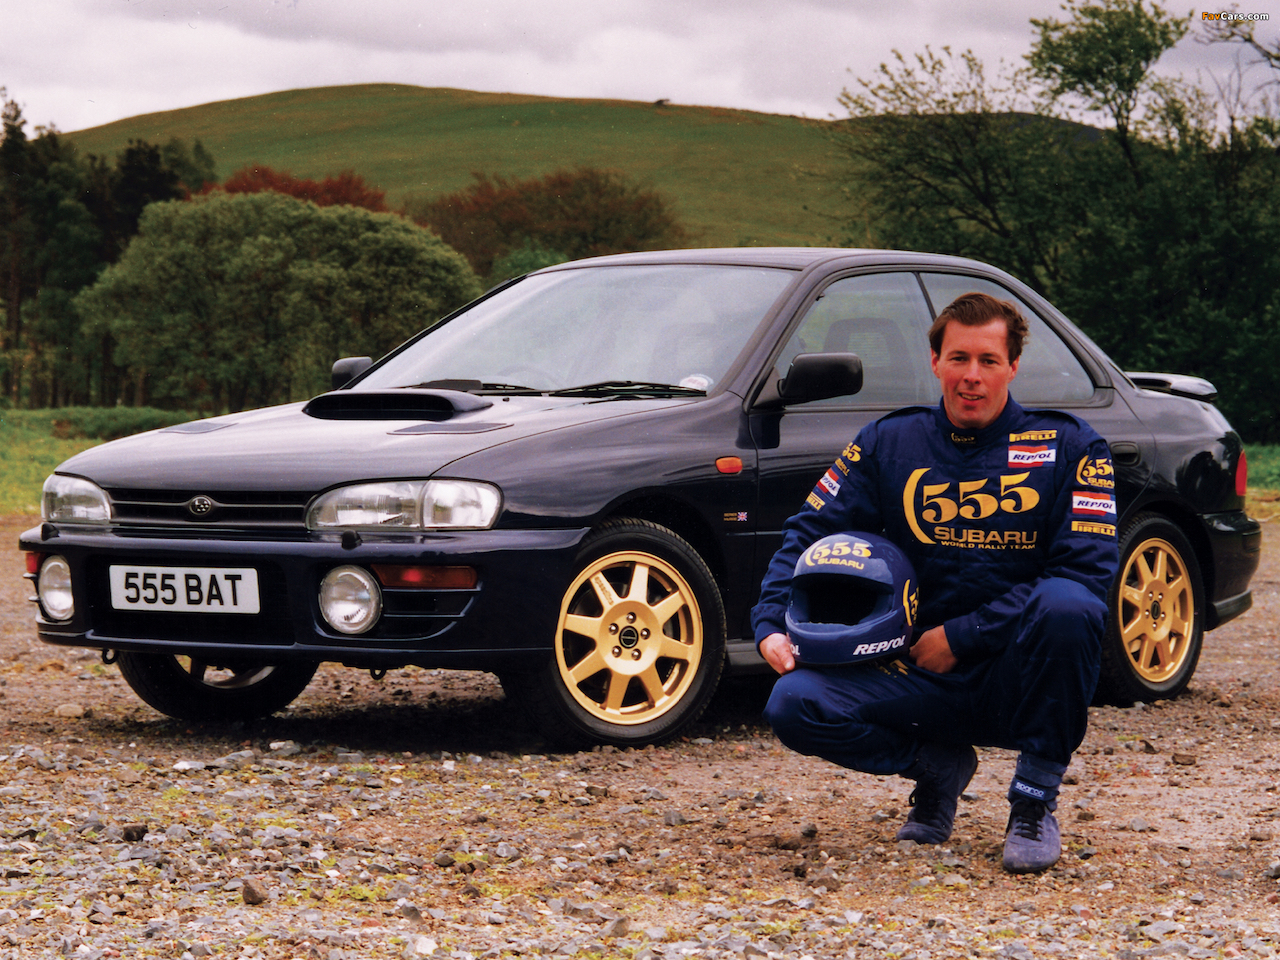 It didn't take Subaru very long to begin capitalising on its WRC success, and the Series McRae was the first in a long line of rally inspired specials